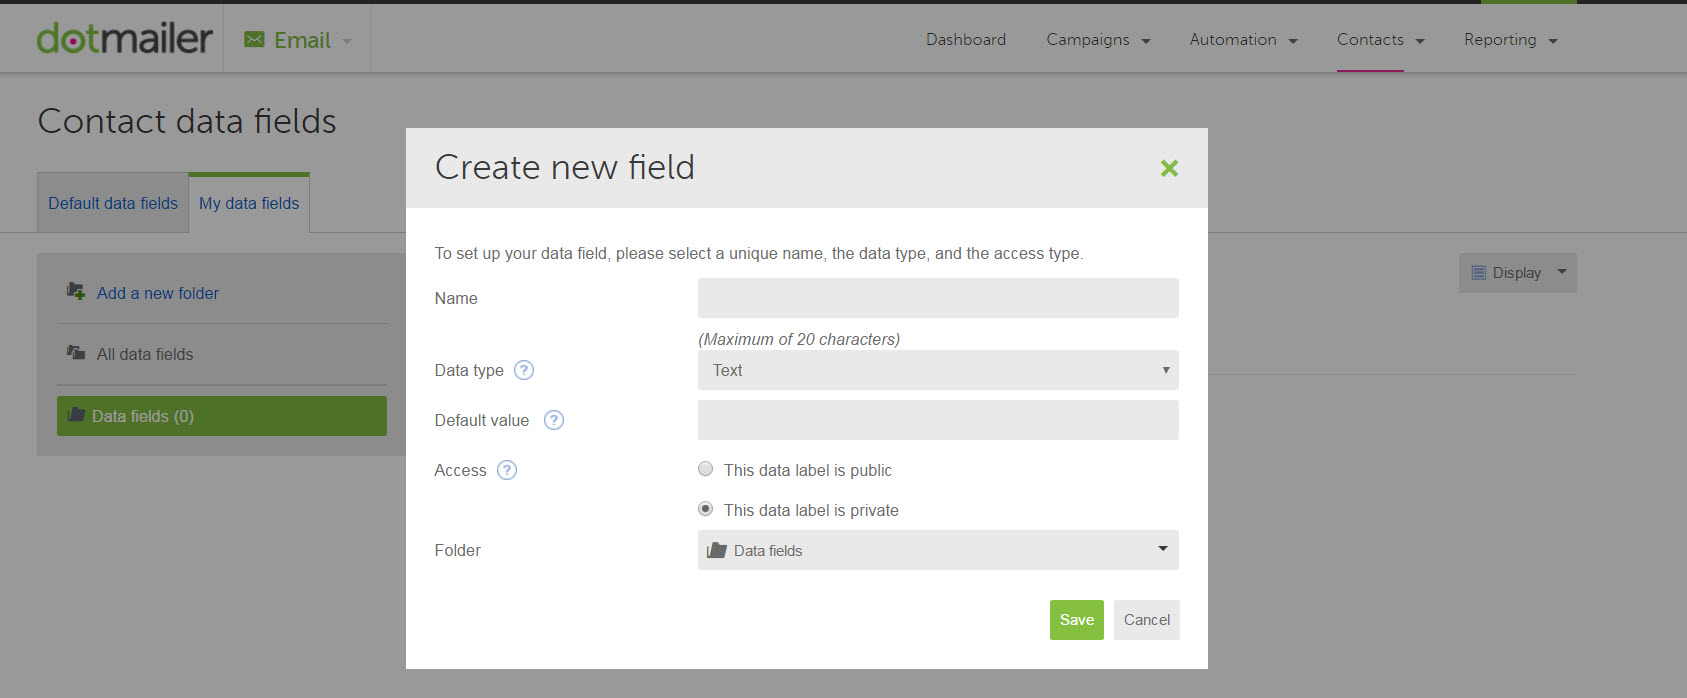 Creating a new data field in dotmailer